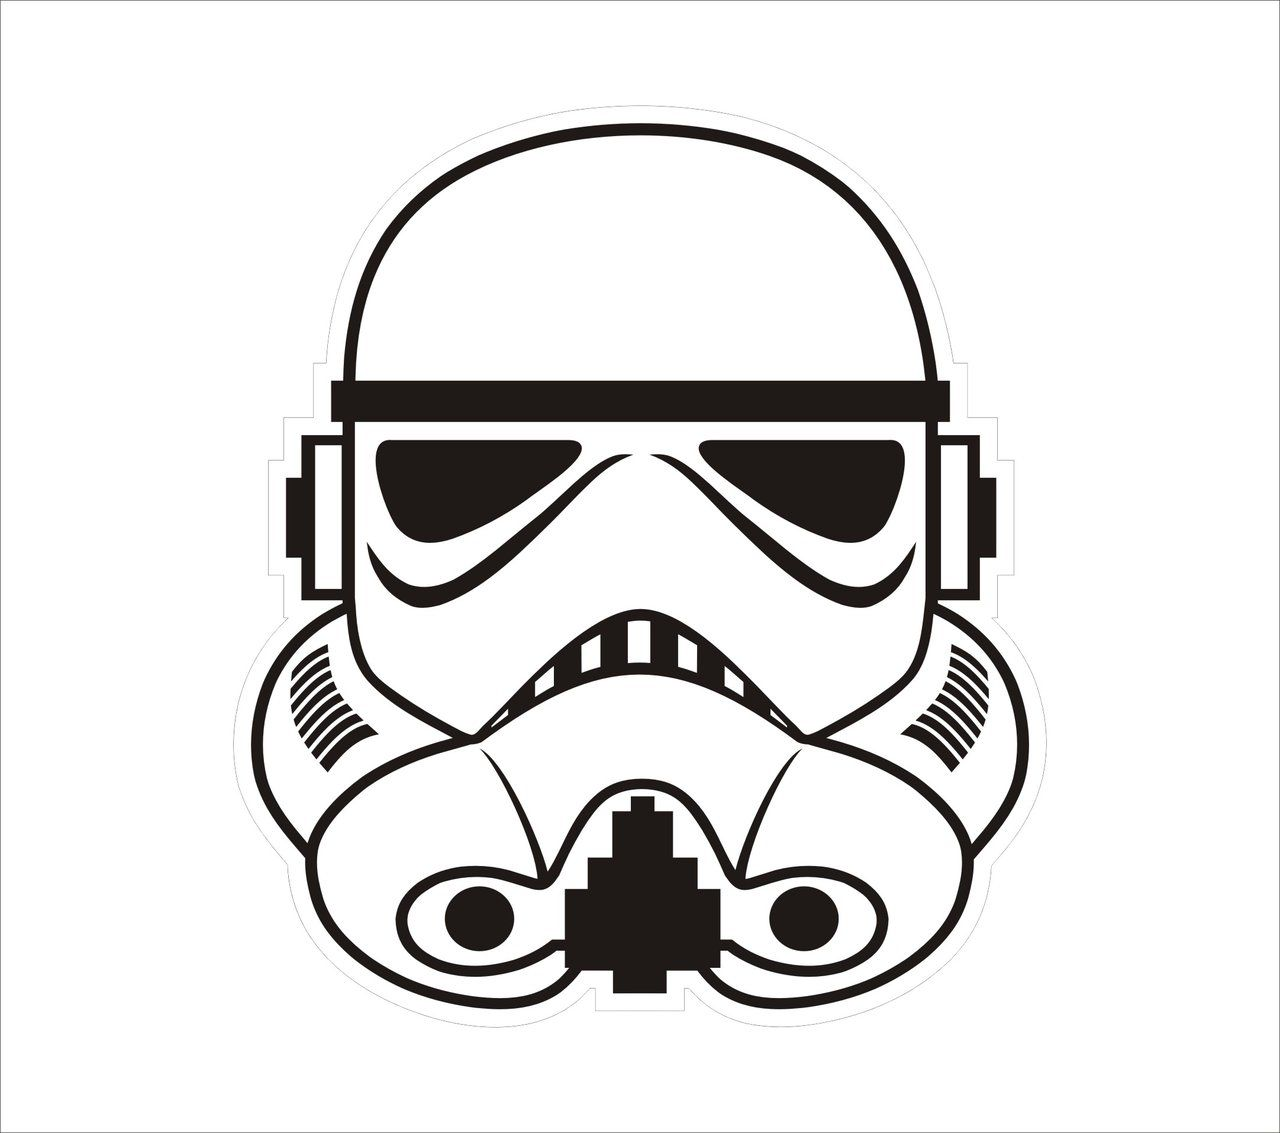 picture regarding Stormtrooper Printable titled 17 of the utmost astonishingly smart pop lifestyle Easter eggs